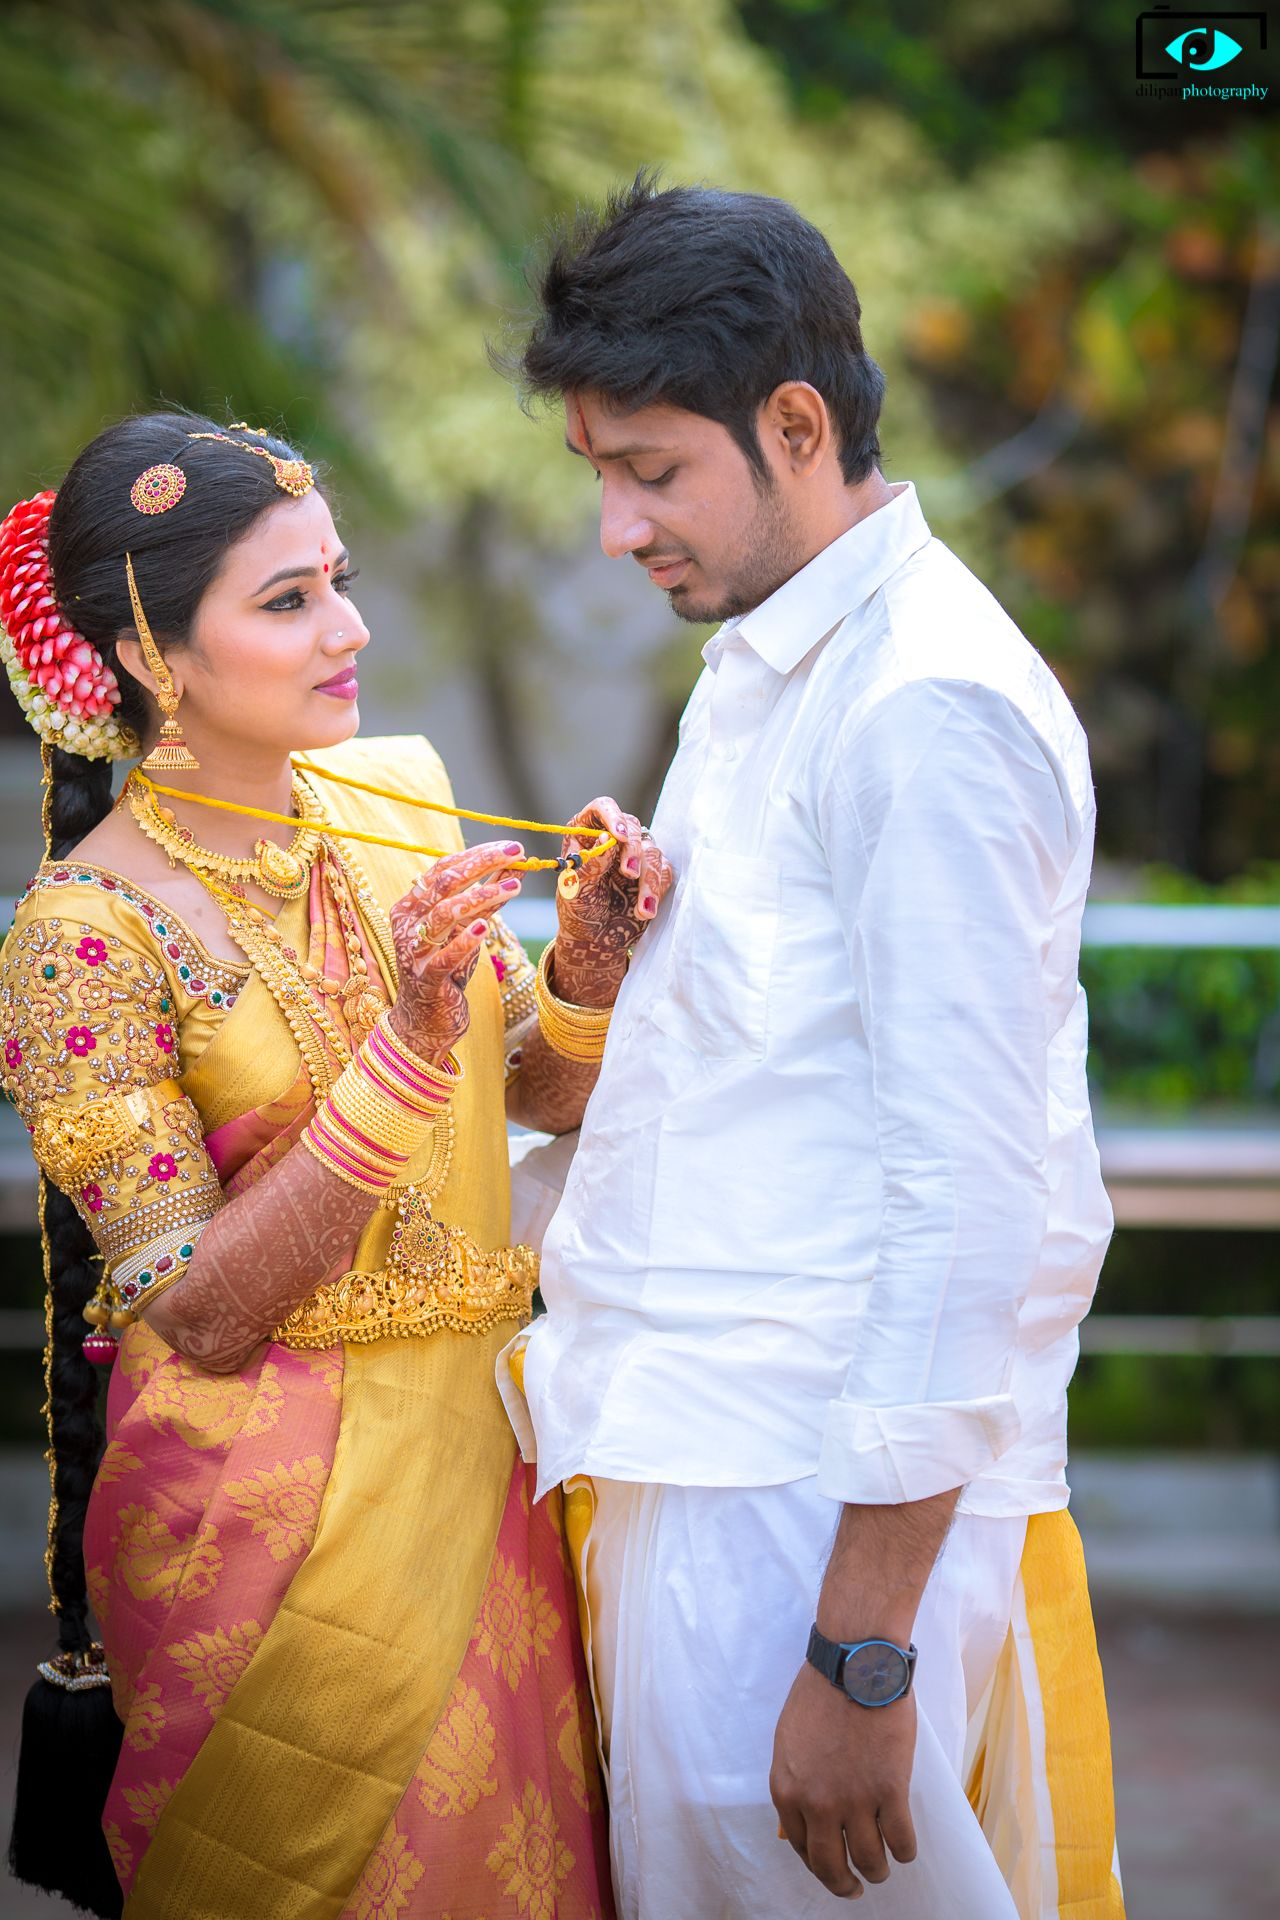 Shopzters is a South Indian wedding website Kerala